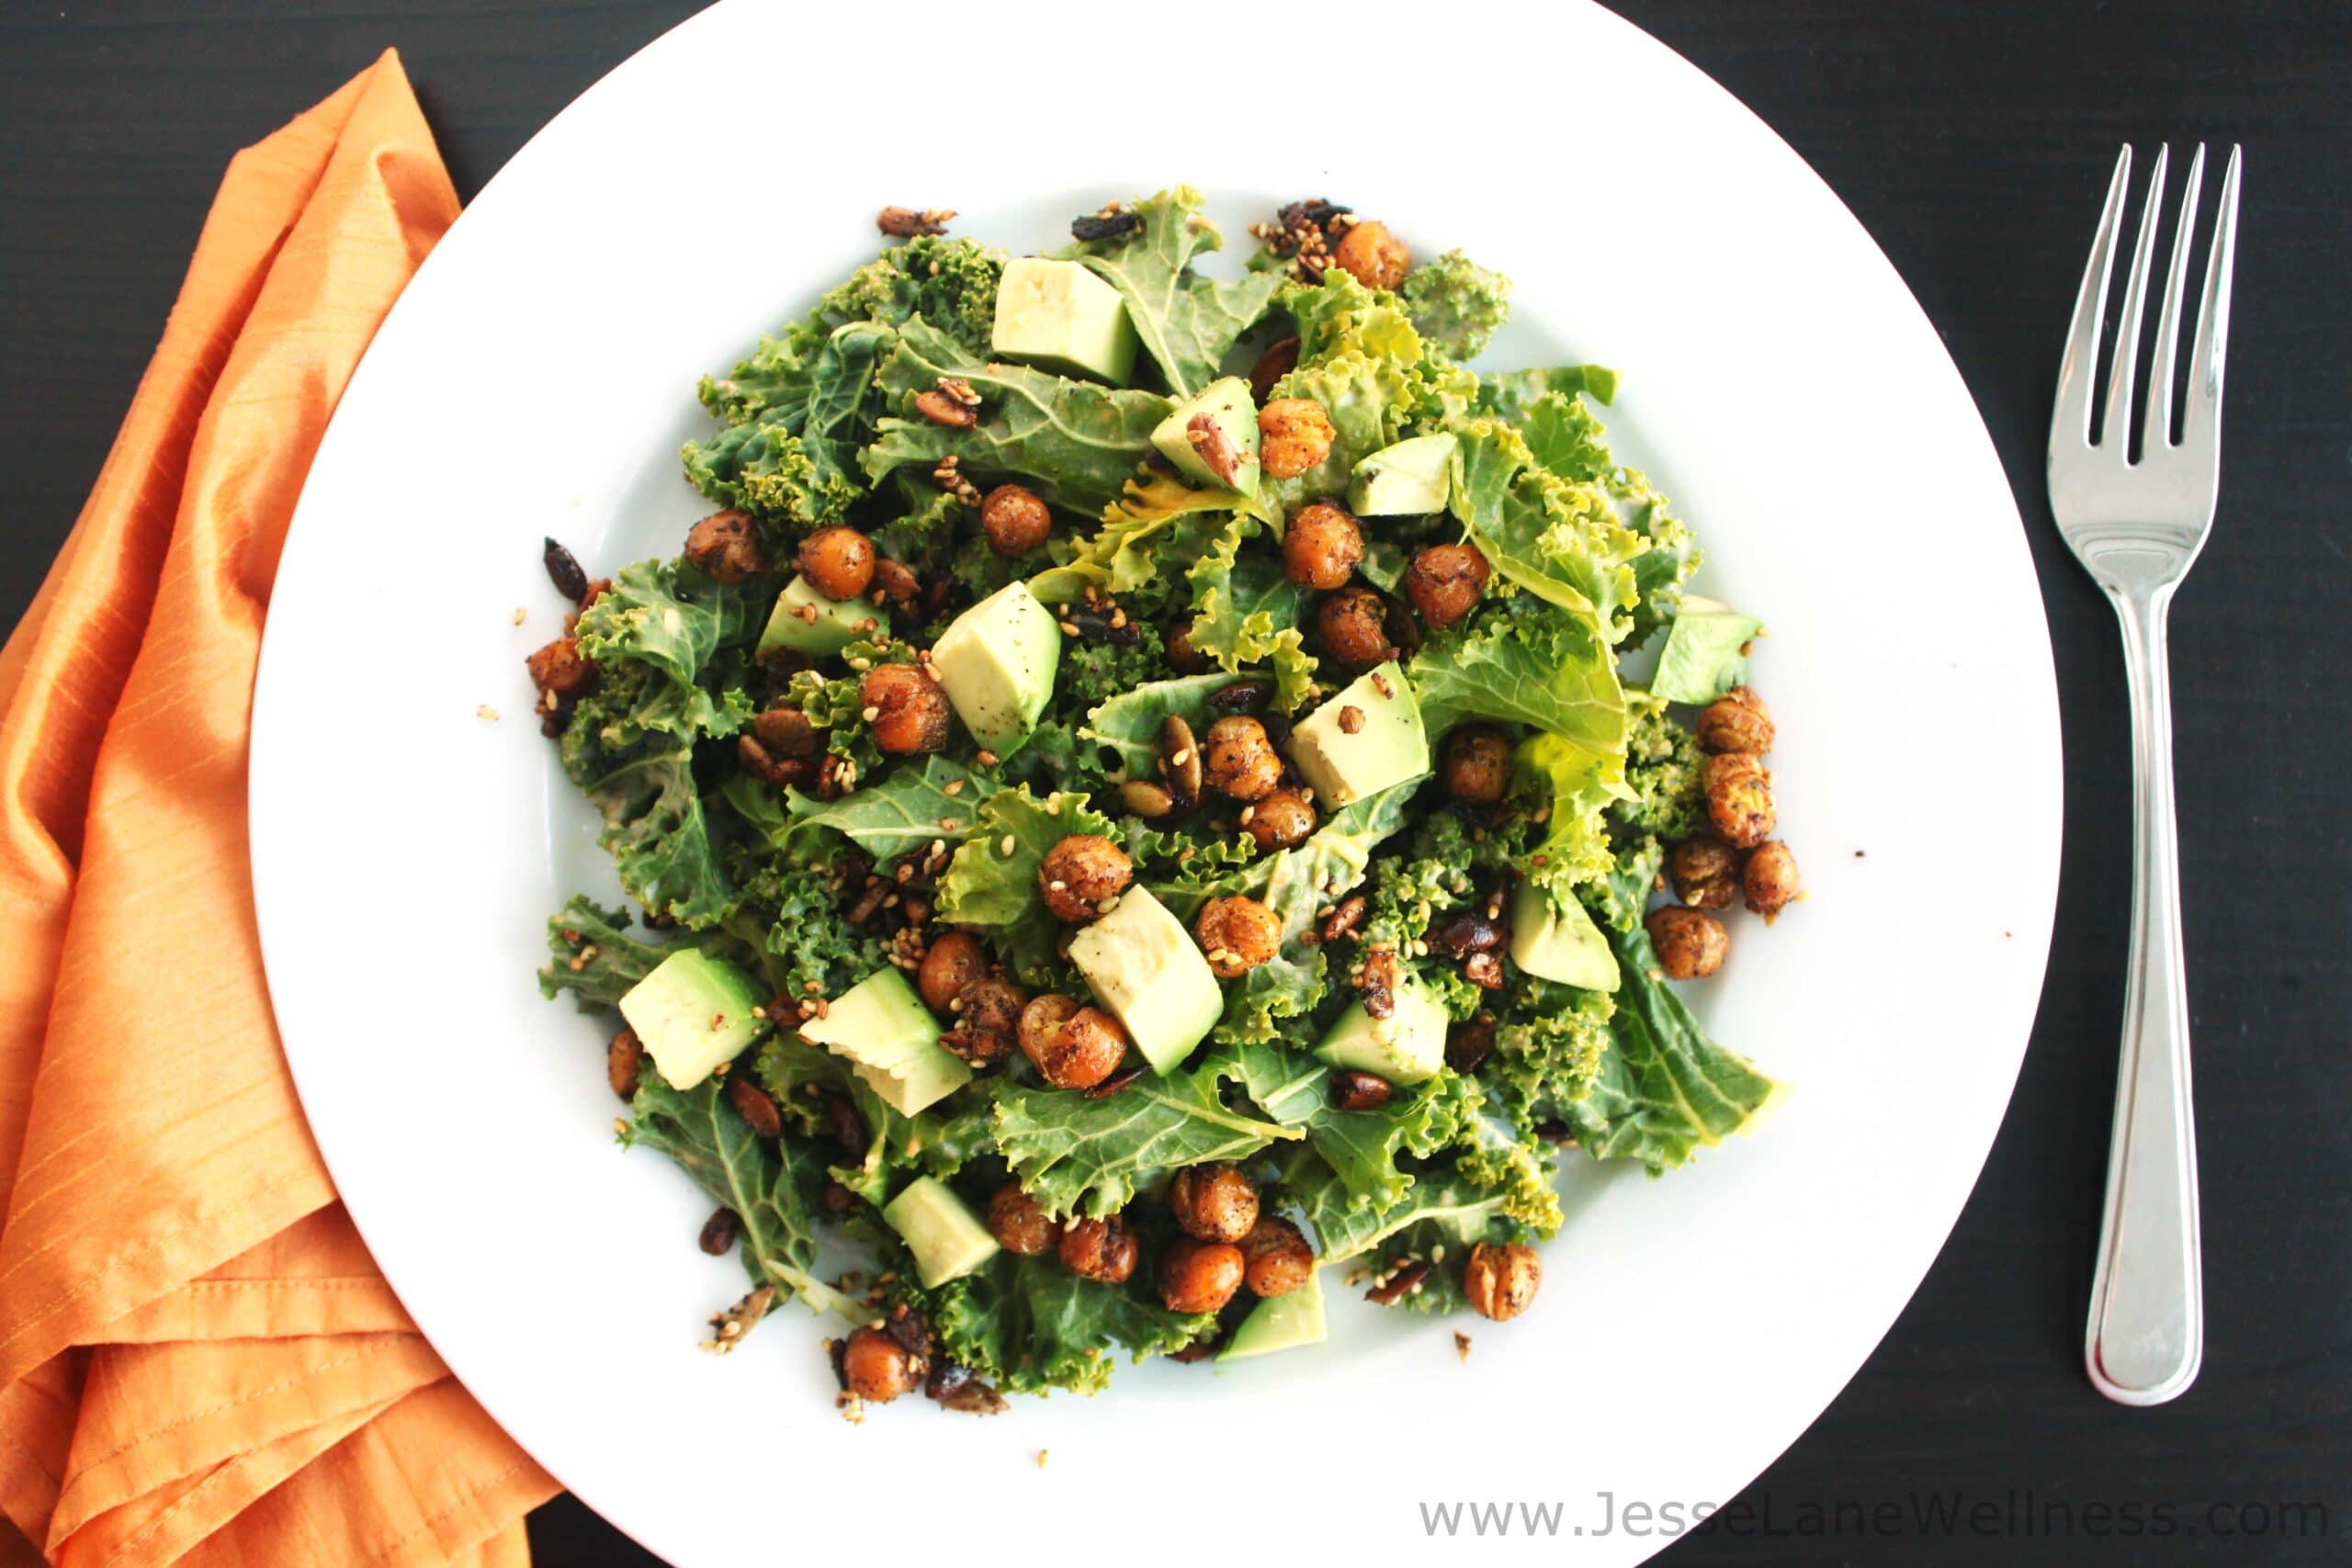 Kale Salad with Crispy Chickpeas by @JesseLWellness #kale